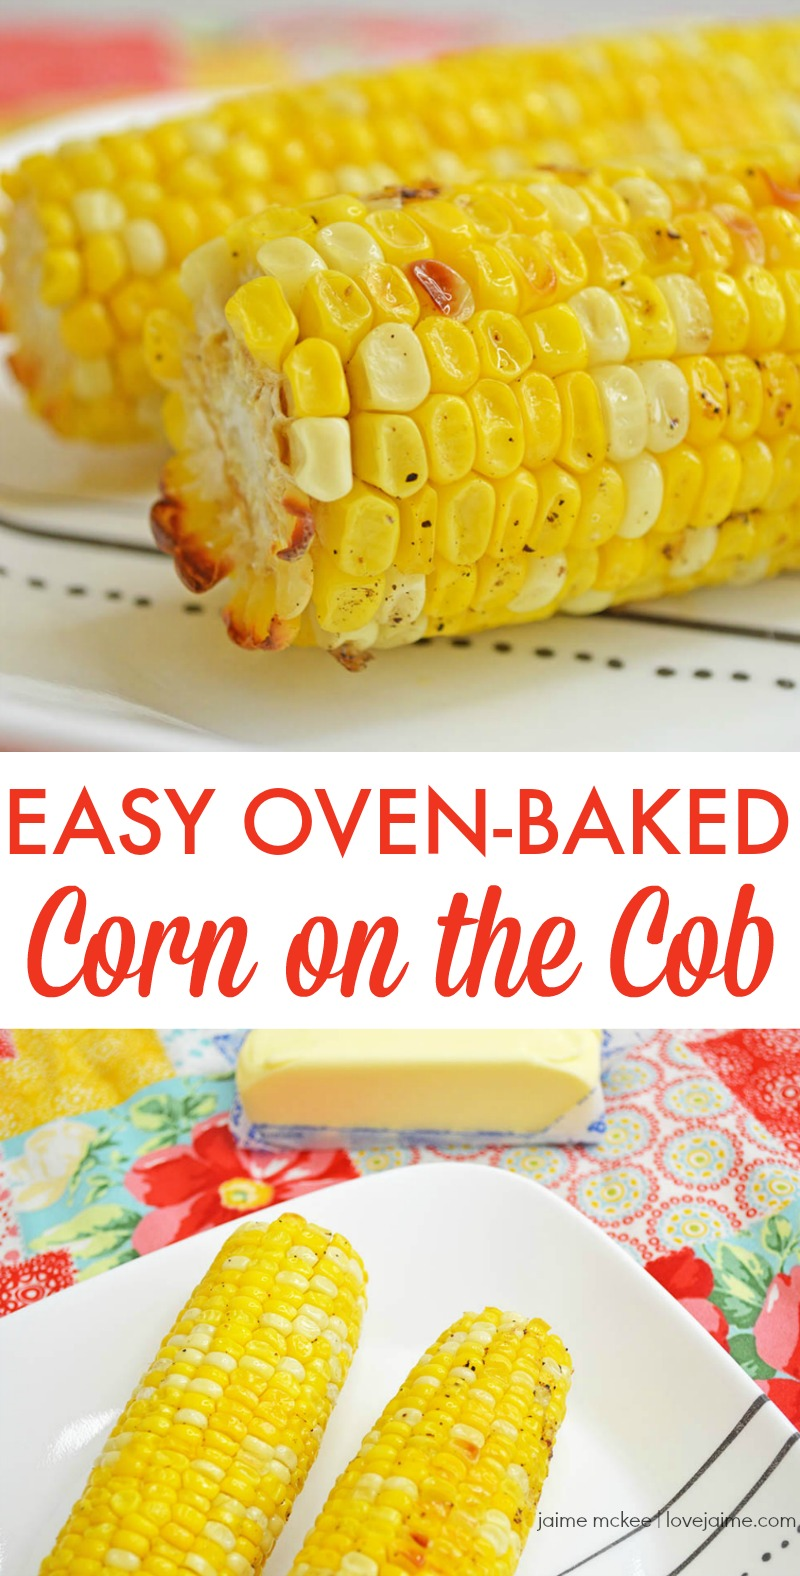 Oven-Baked Corn on the Cob is so simple to make and perfect for entertaining during this summer season! #recipe